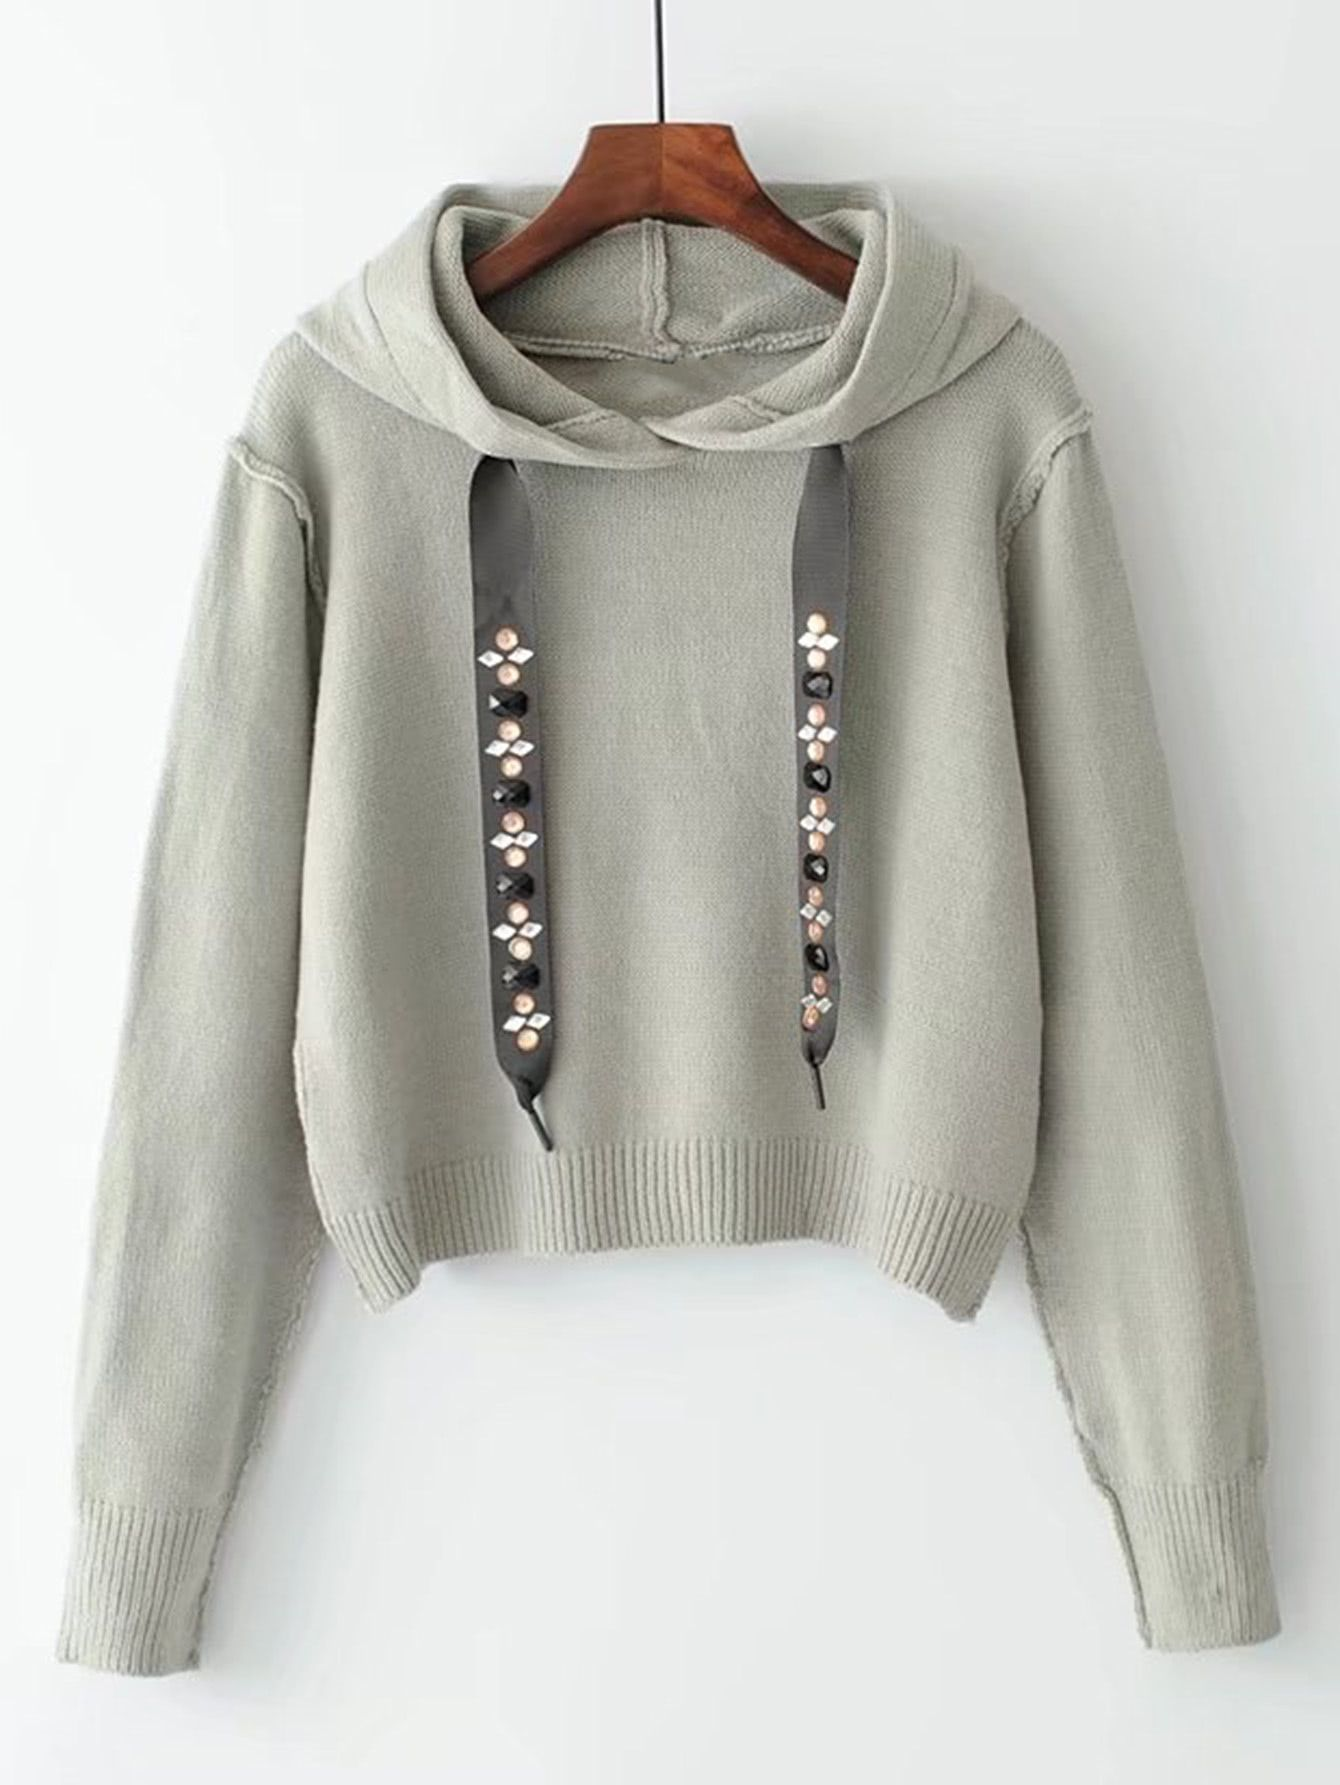 Studded Drawstring Hooded Sweater | Hooded sweater, Shopping and ...